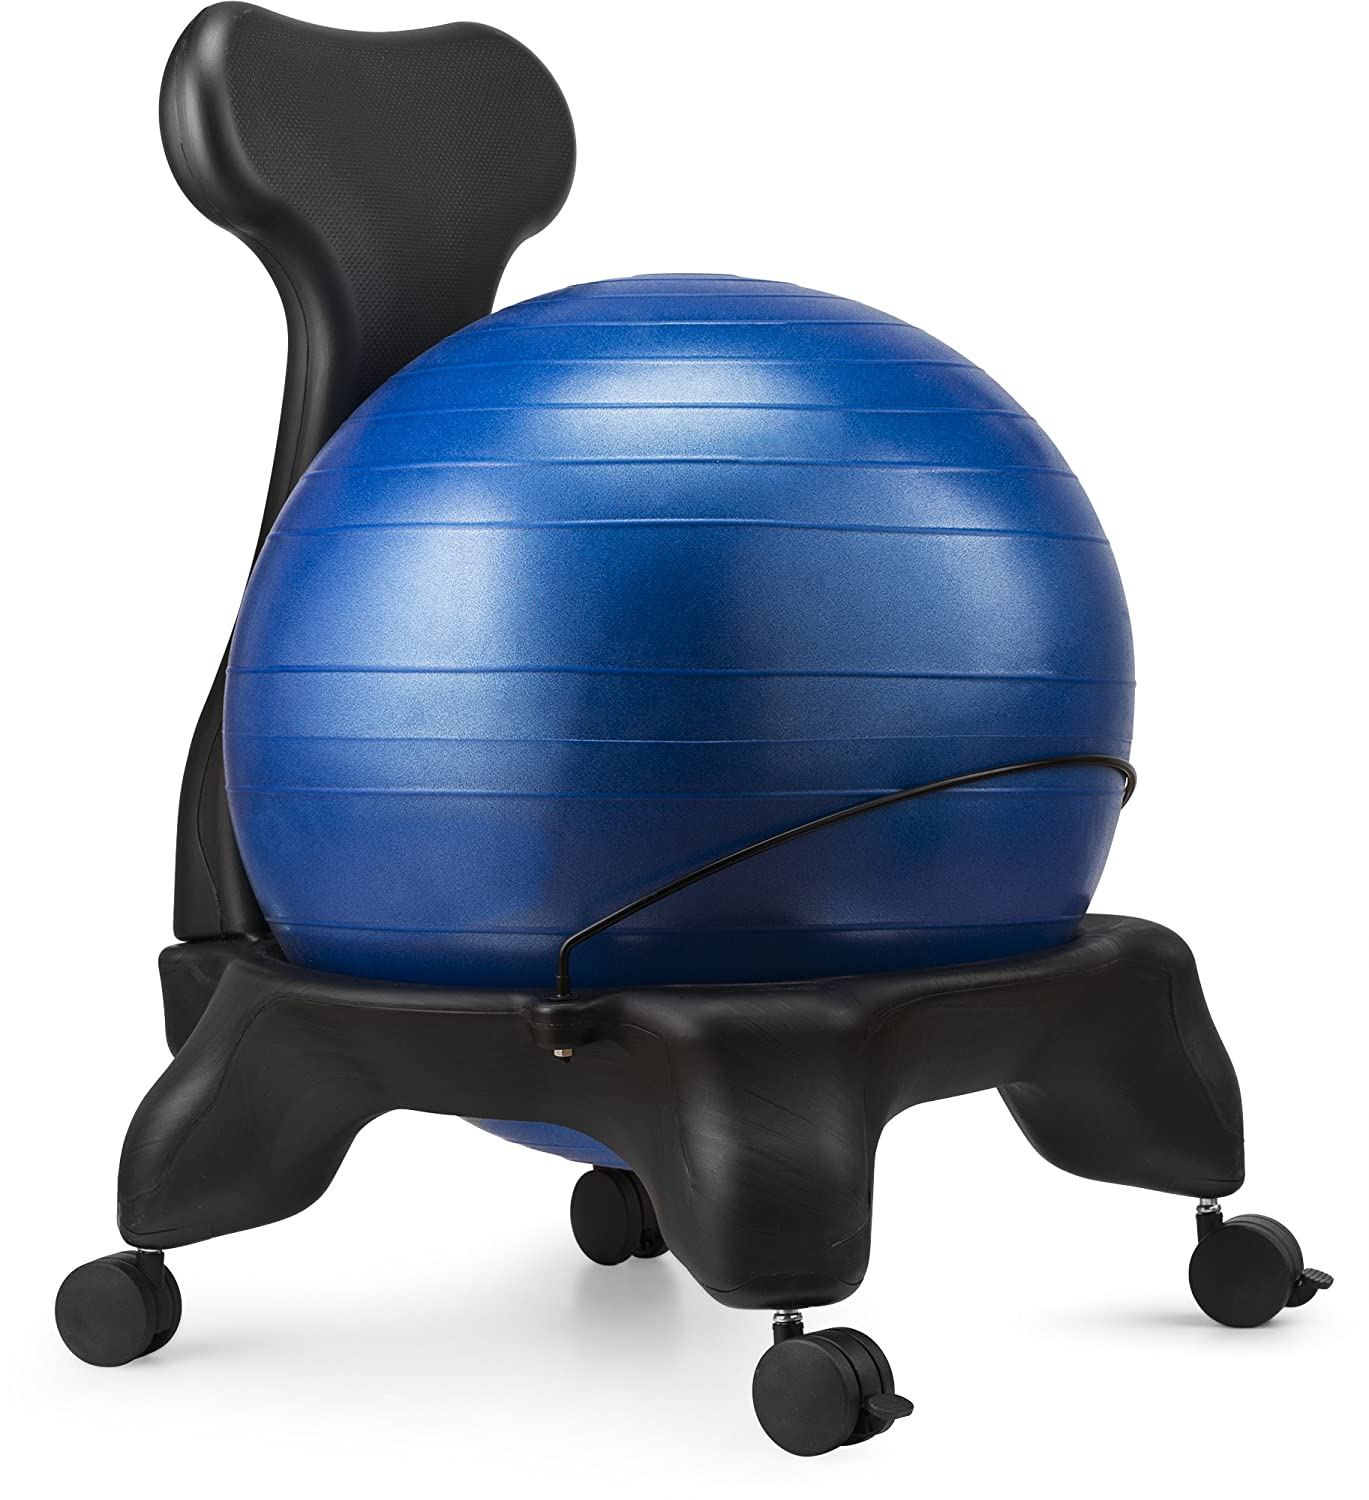 Amazon LuxFit Exercise Ball Chair Black Sports & Outdoors